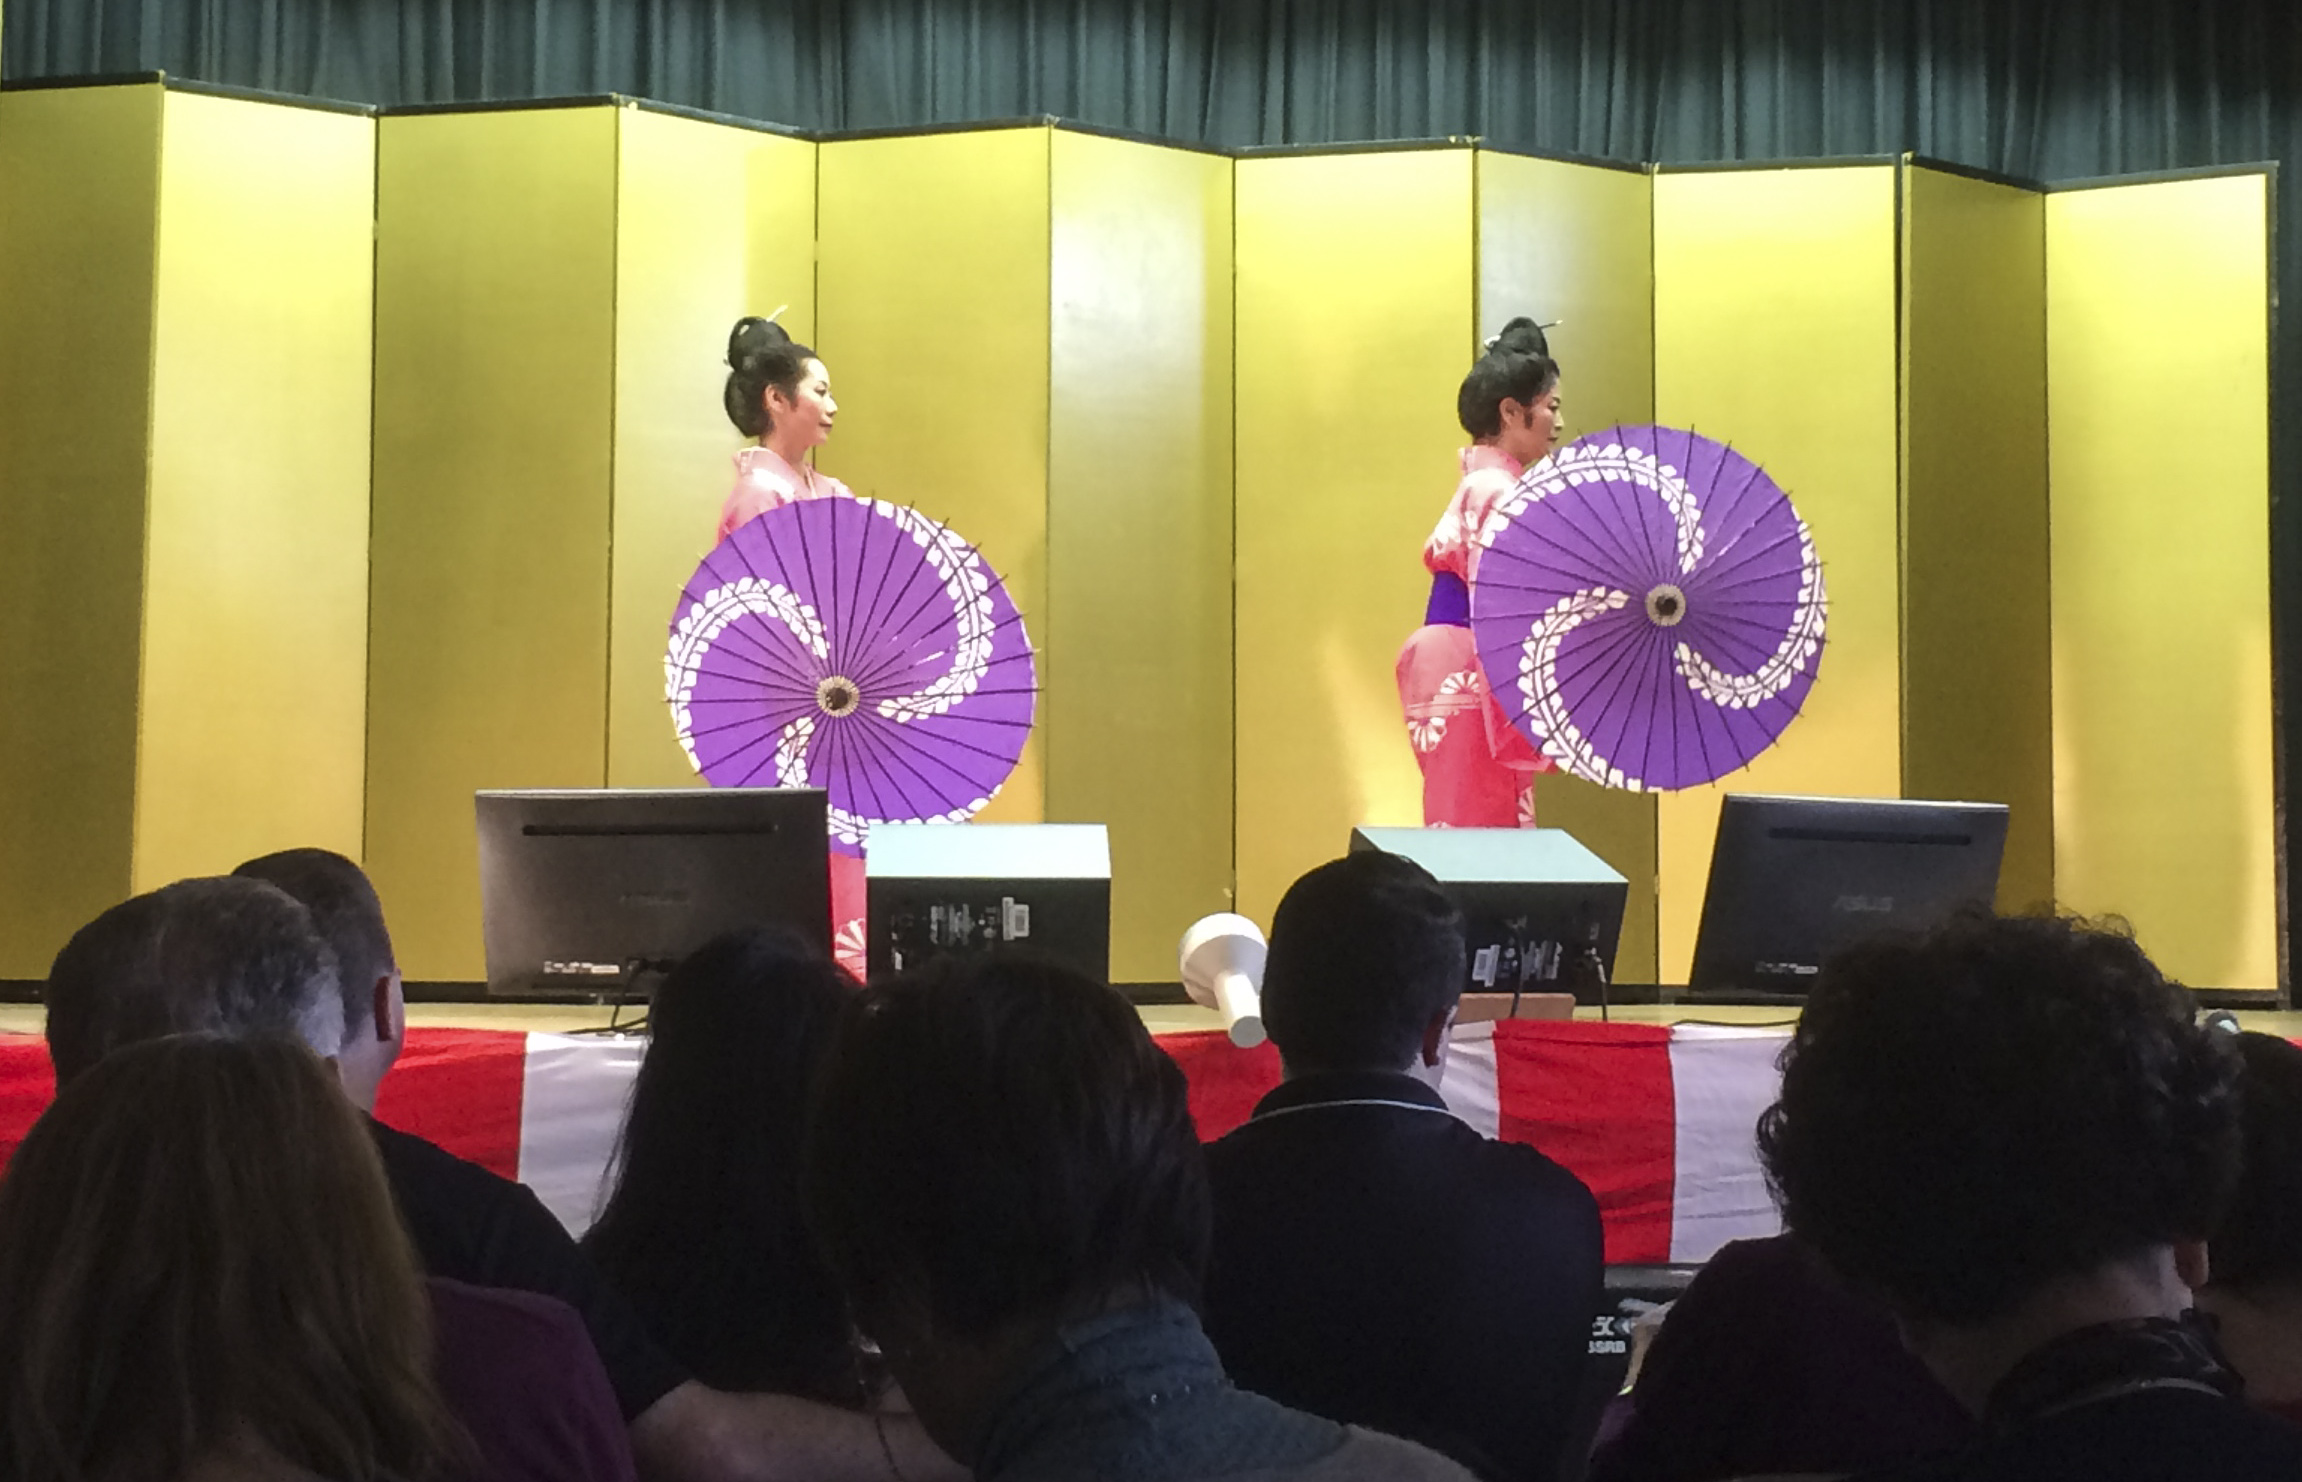 <p>Traditional Japanese dance helps to bring in new audiences at Denver's annual Kohaku Uta Gassen event.</p>